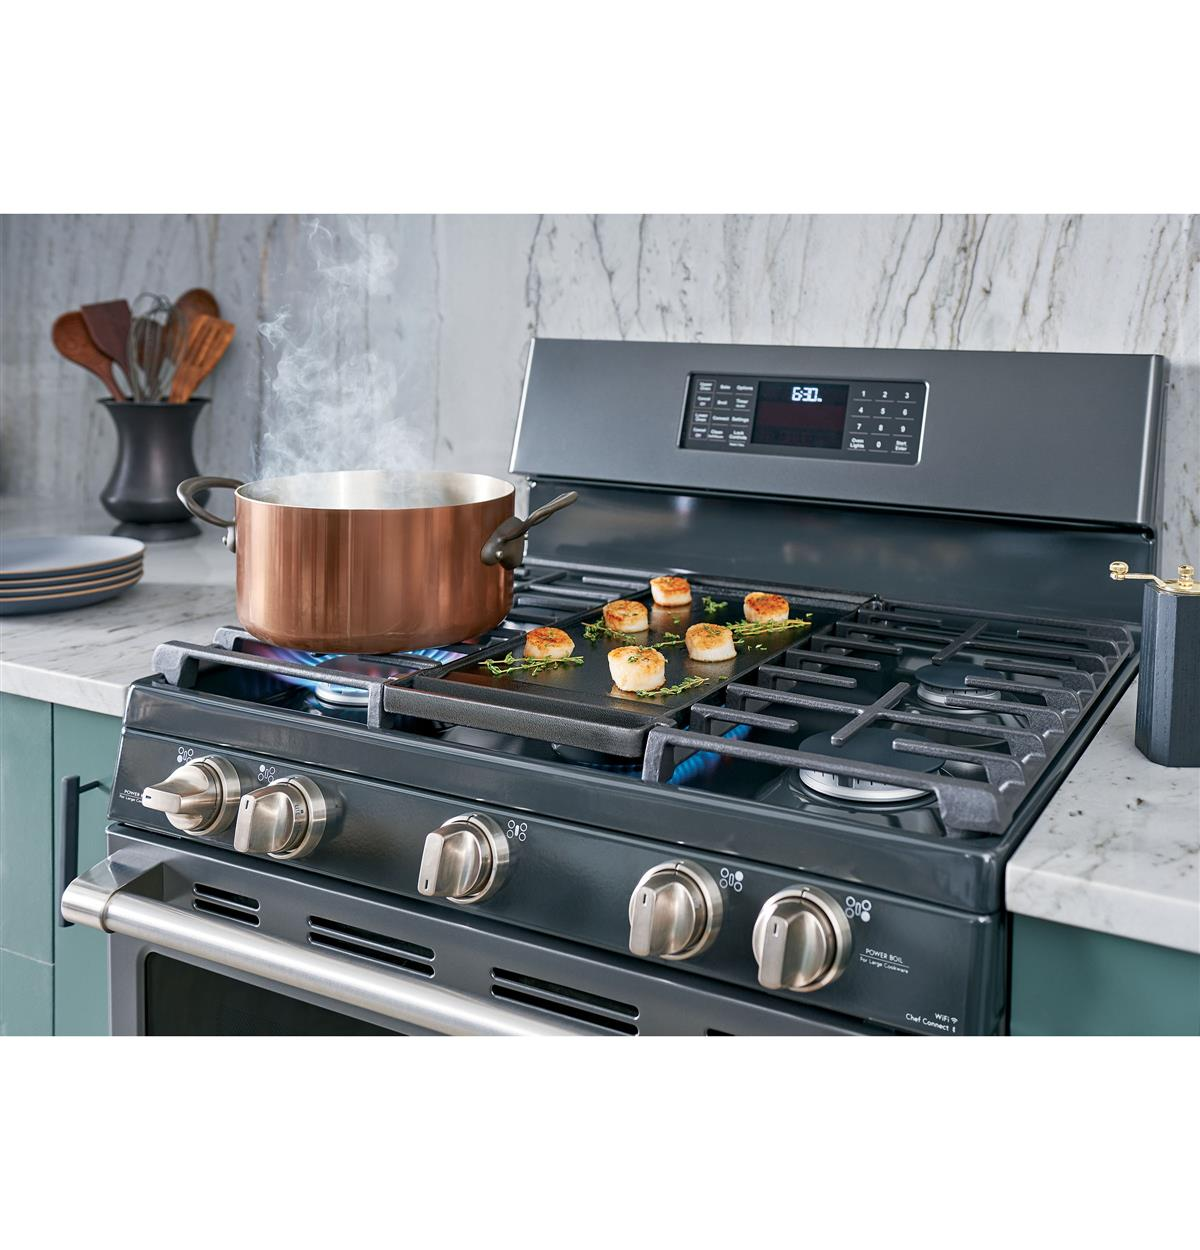 Versatile cooktop complements every cooking style